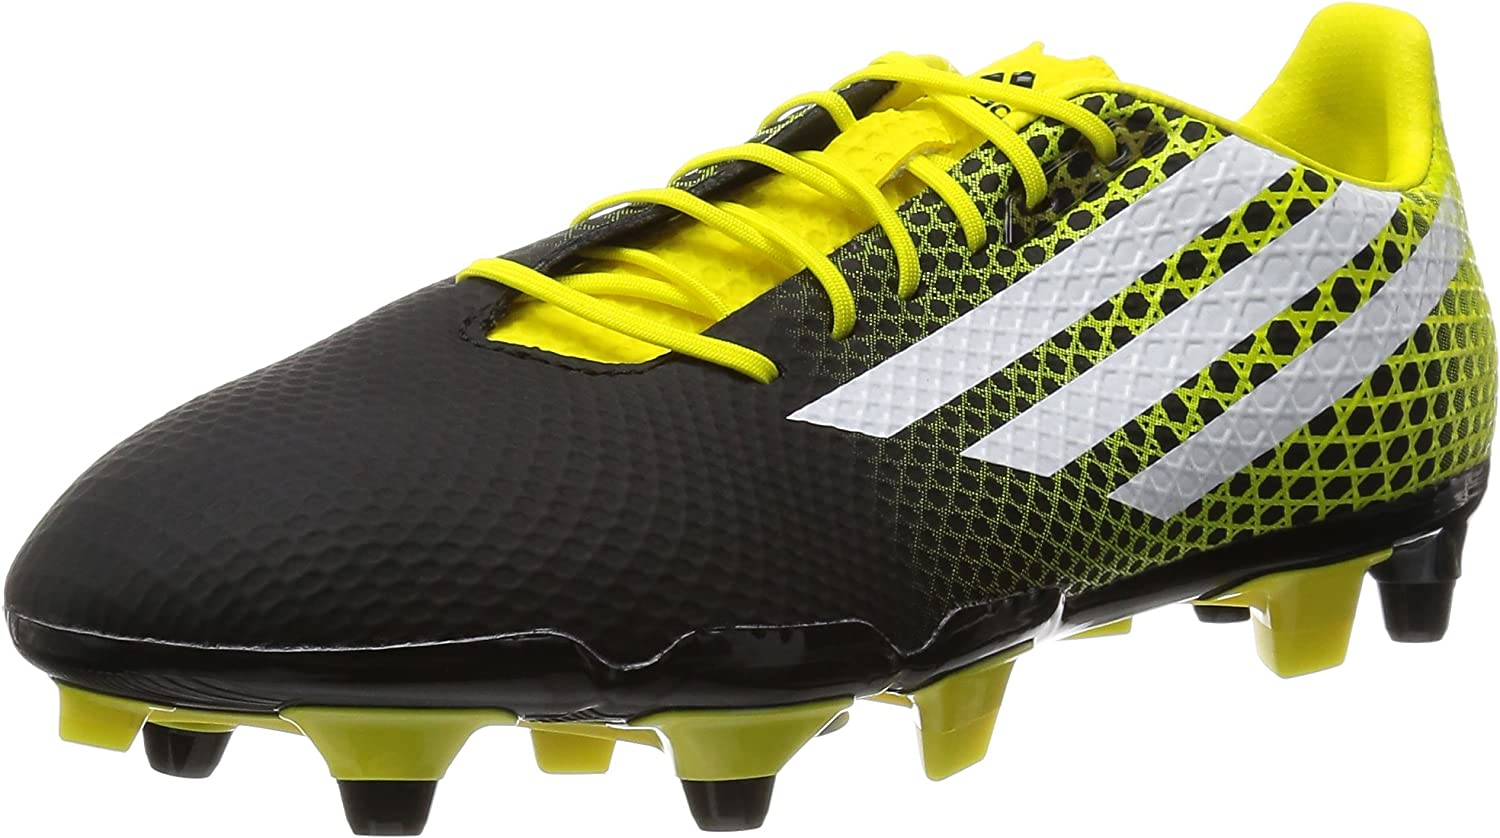 CRAZYQUICK Malice SG Rugby Boots - Black